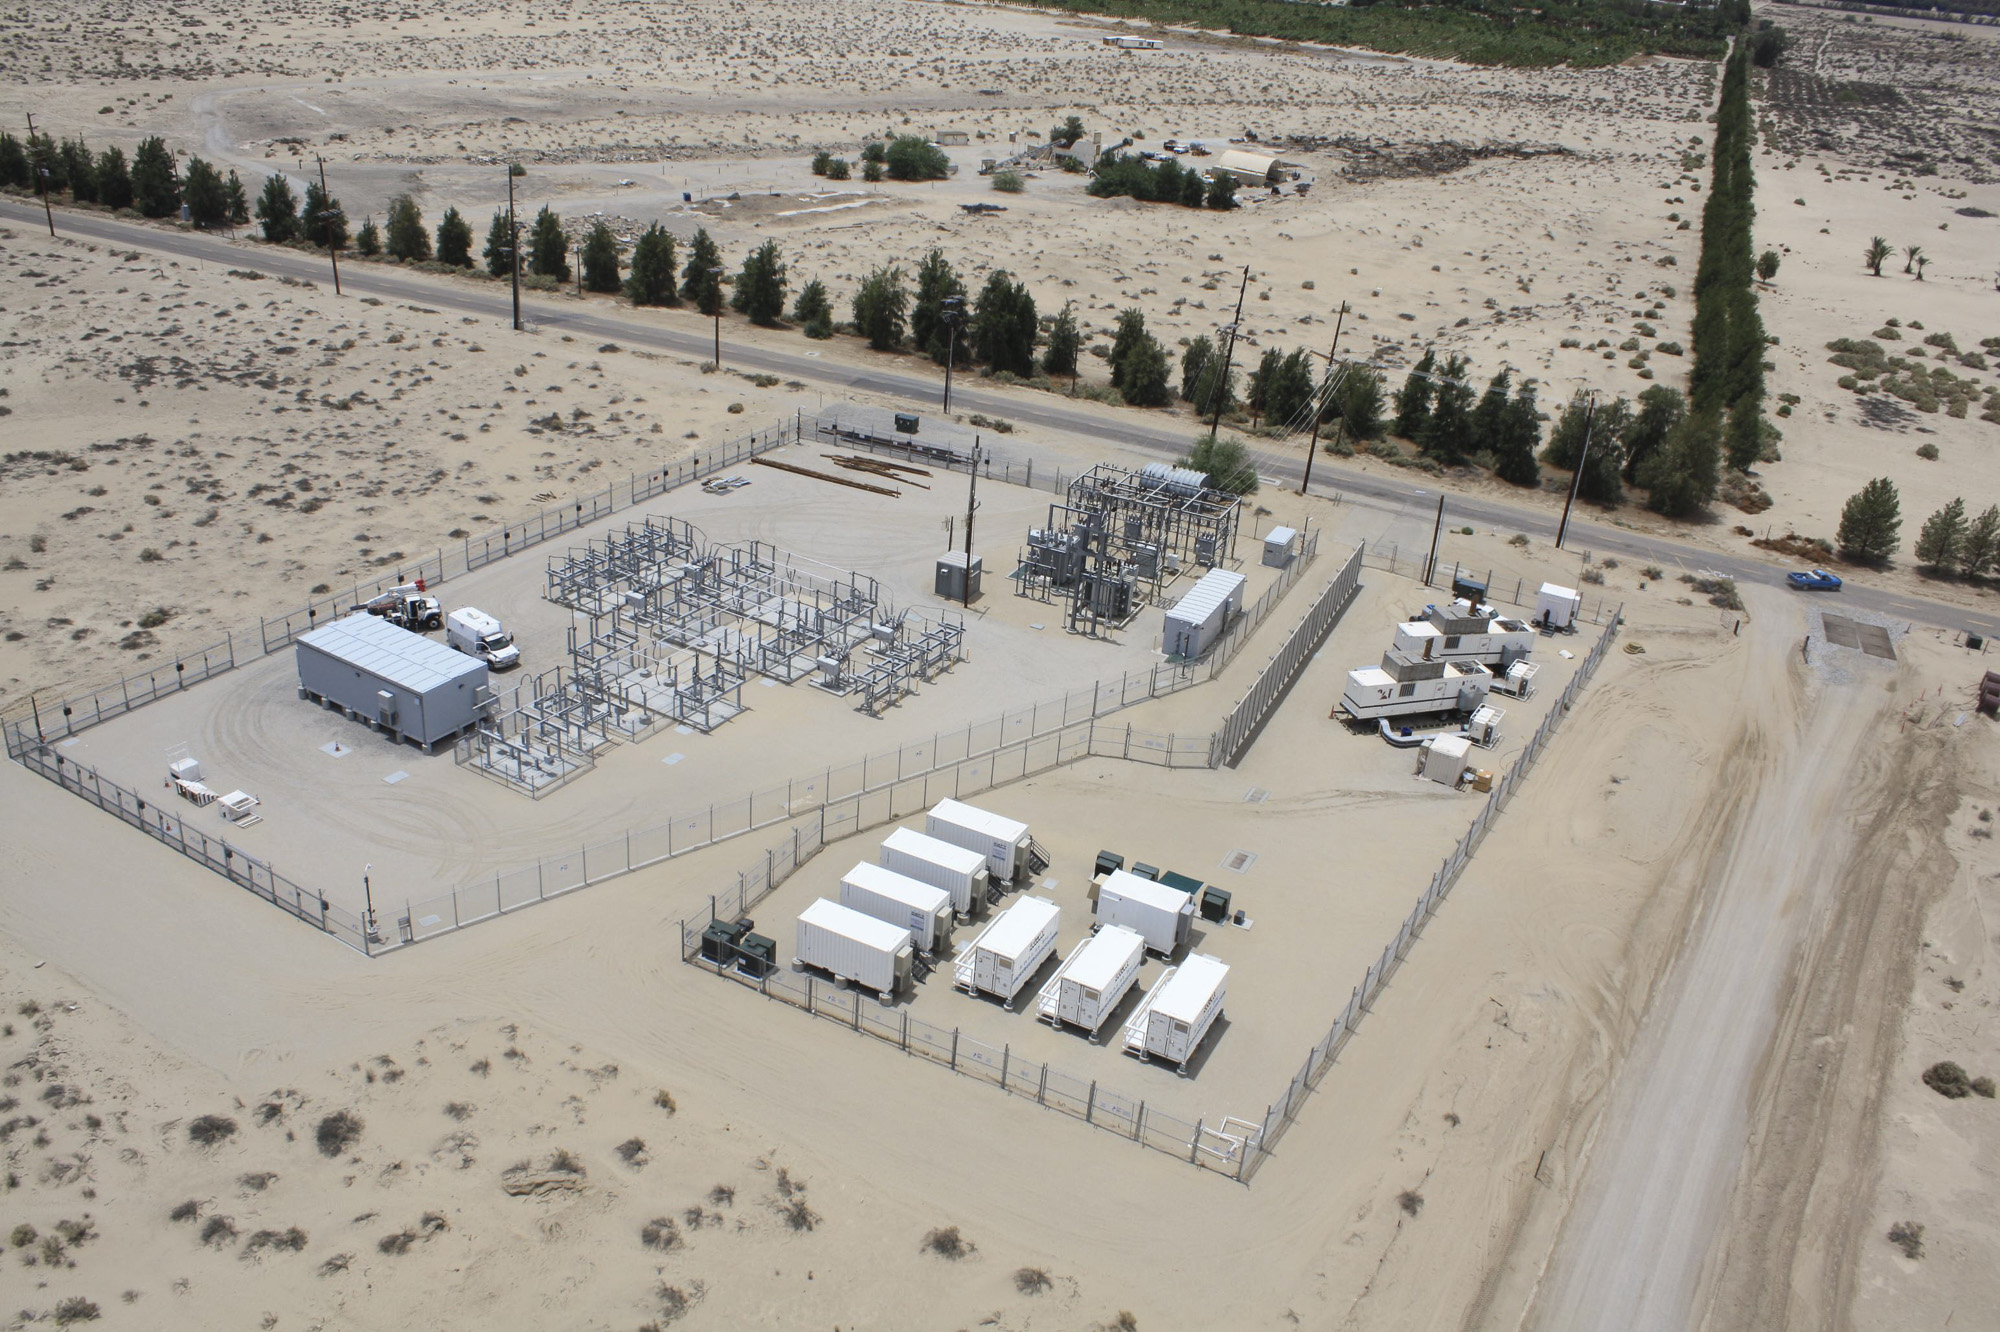 The microgrid, or small energy system, that powers the California desert town of Borrego Springs is seen from above. Photo courtesy of San Diego Gas & Electric